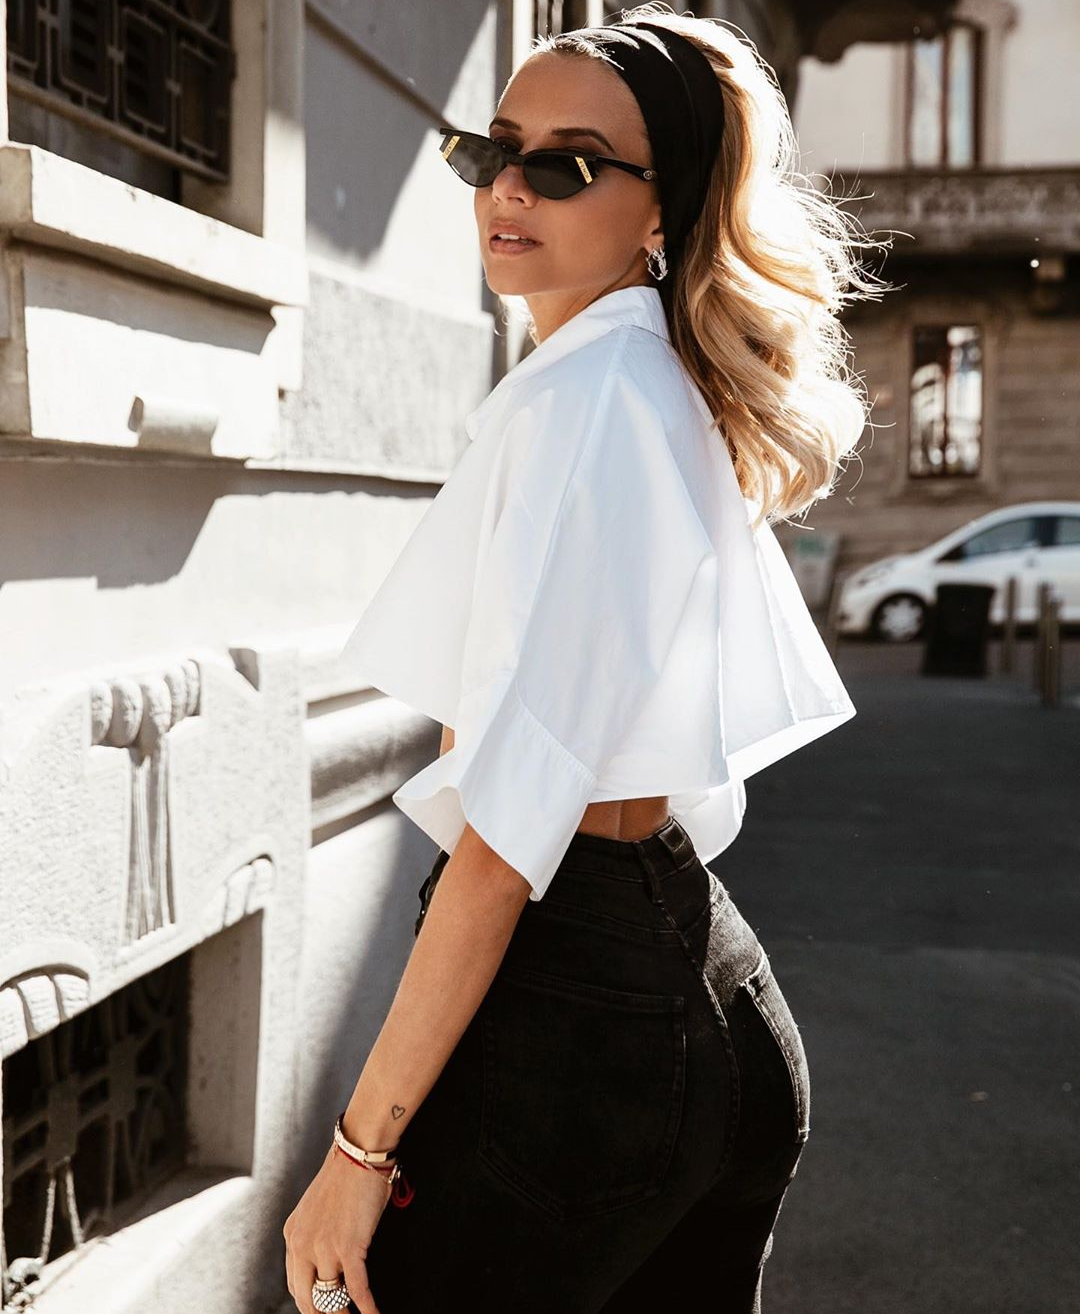 Giadzy Master Chic Italian Fashion With These 7 Rules